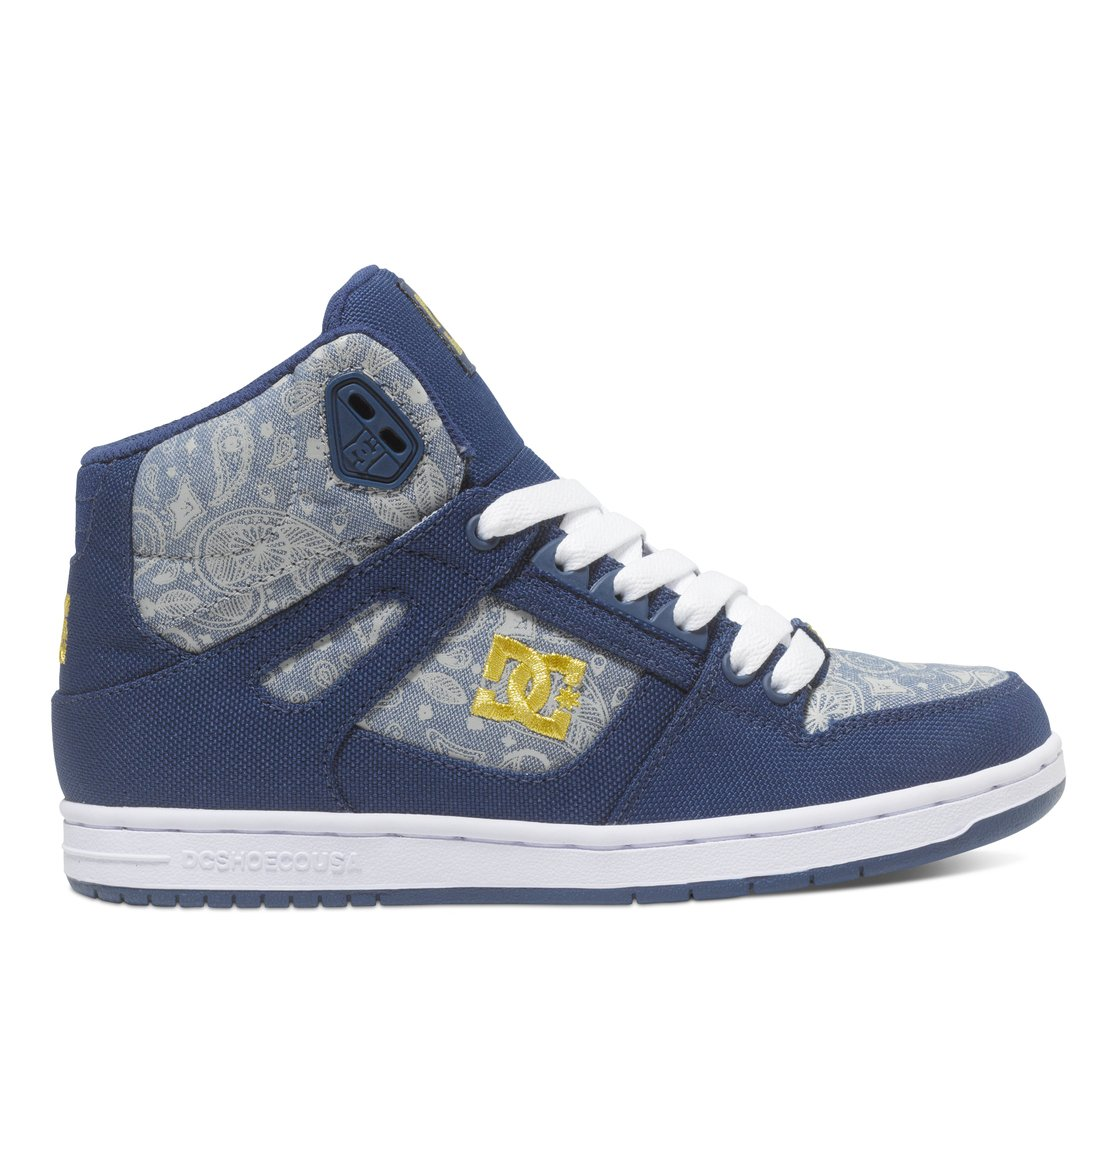 6913ab73c45a 0 Rebound High TX SE - High-Top Shoes for Women ADJS100065 DC Shoes